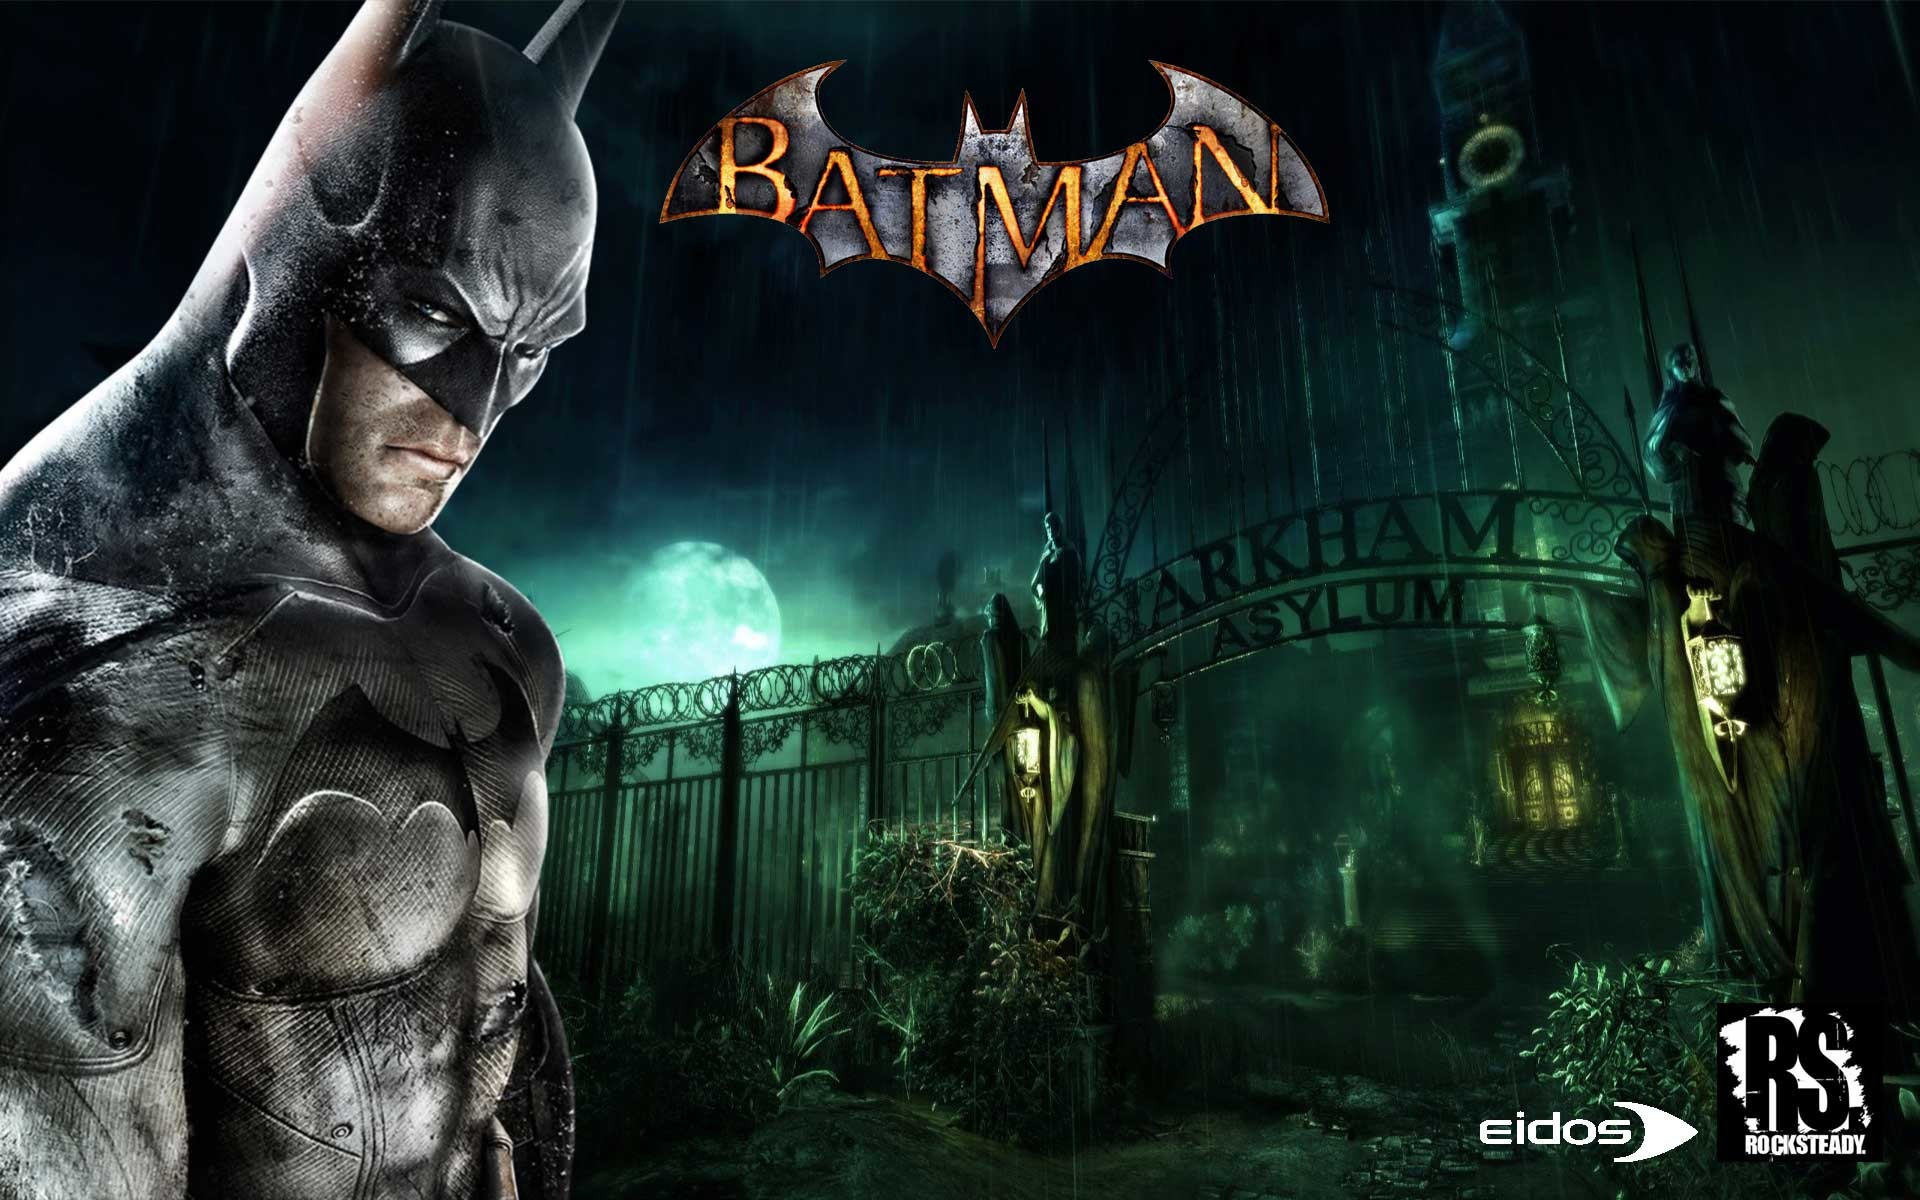 batman arkham asylum wallpaper hd (74+ images)